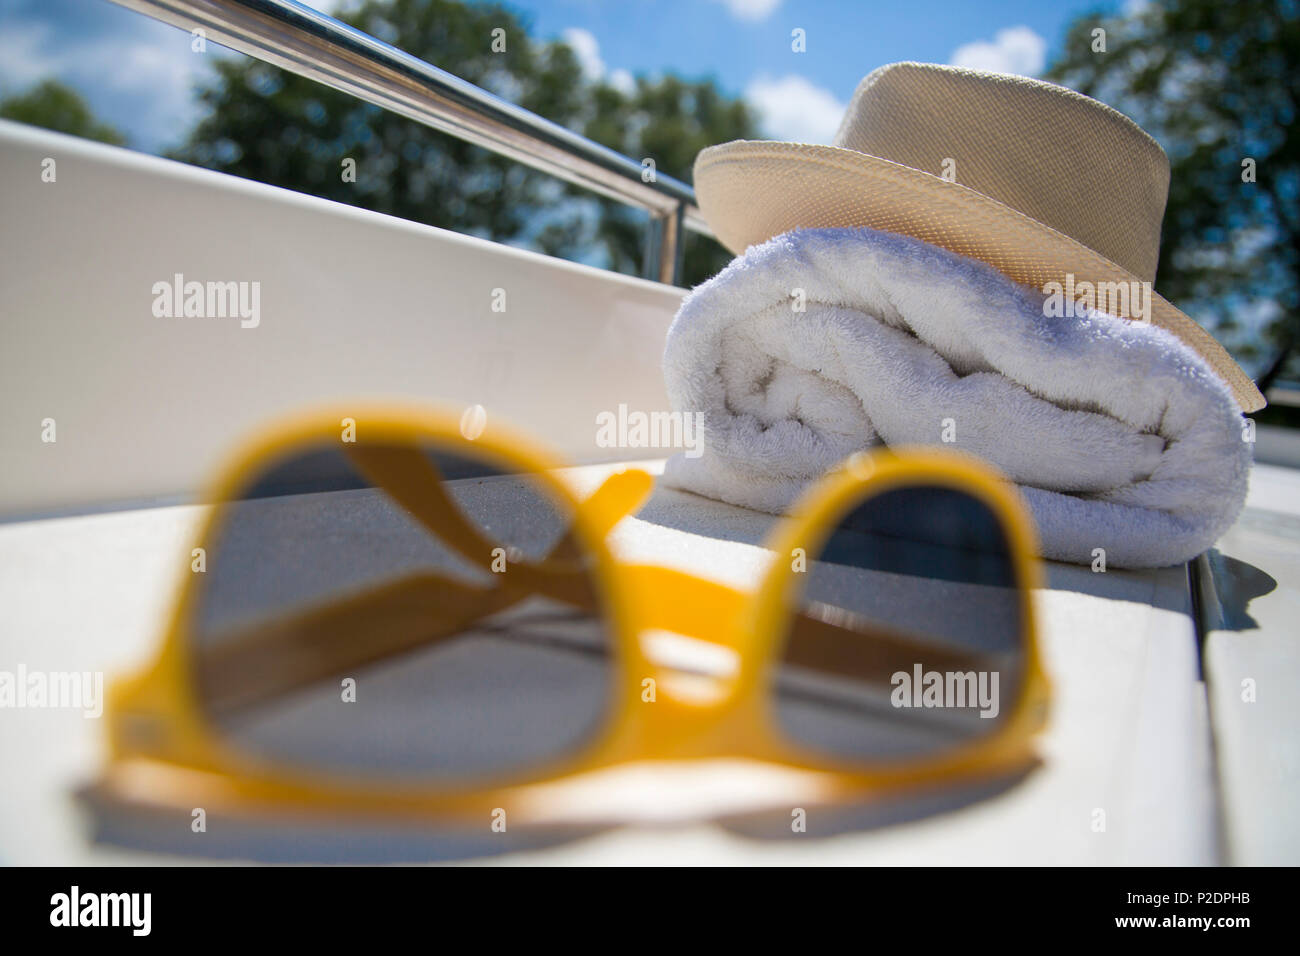 Still life with yellow sunglasses, hat and towel on deck of Le Boat Royal Mystique houseboat on the Bruges - Ostend canal, near - Stock Image